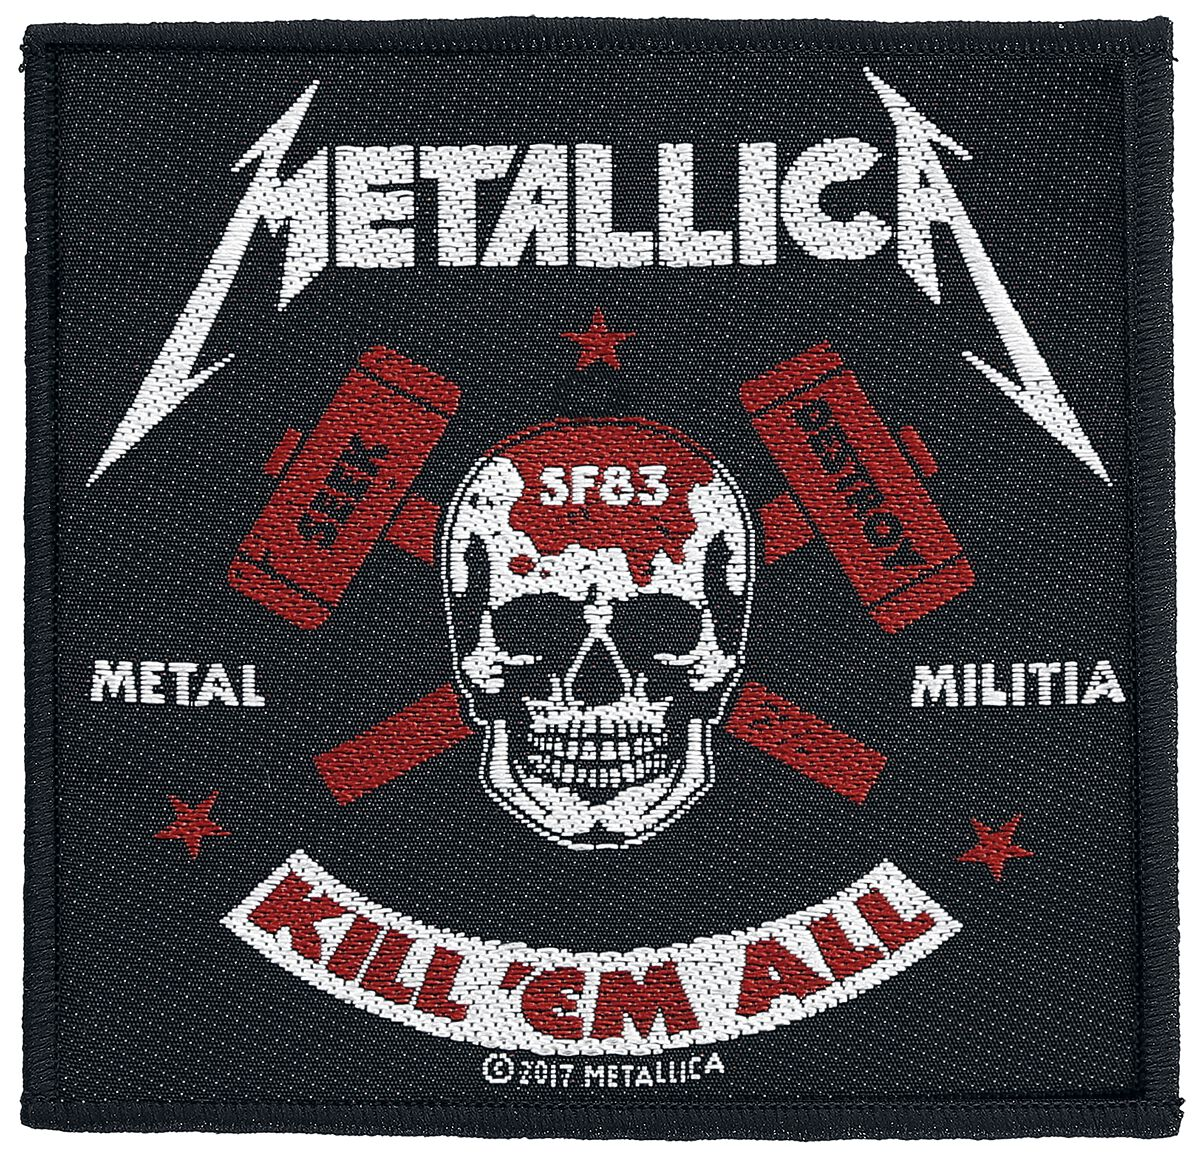 Metallica  Metal Militia  Patch  multicolor